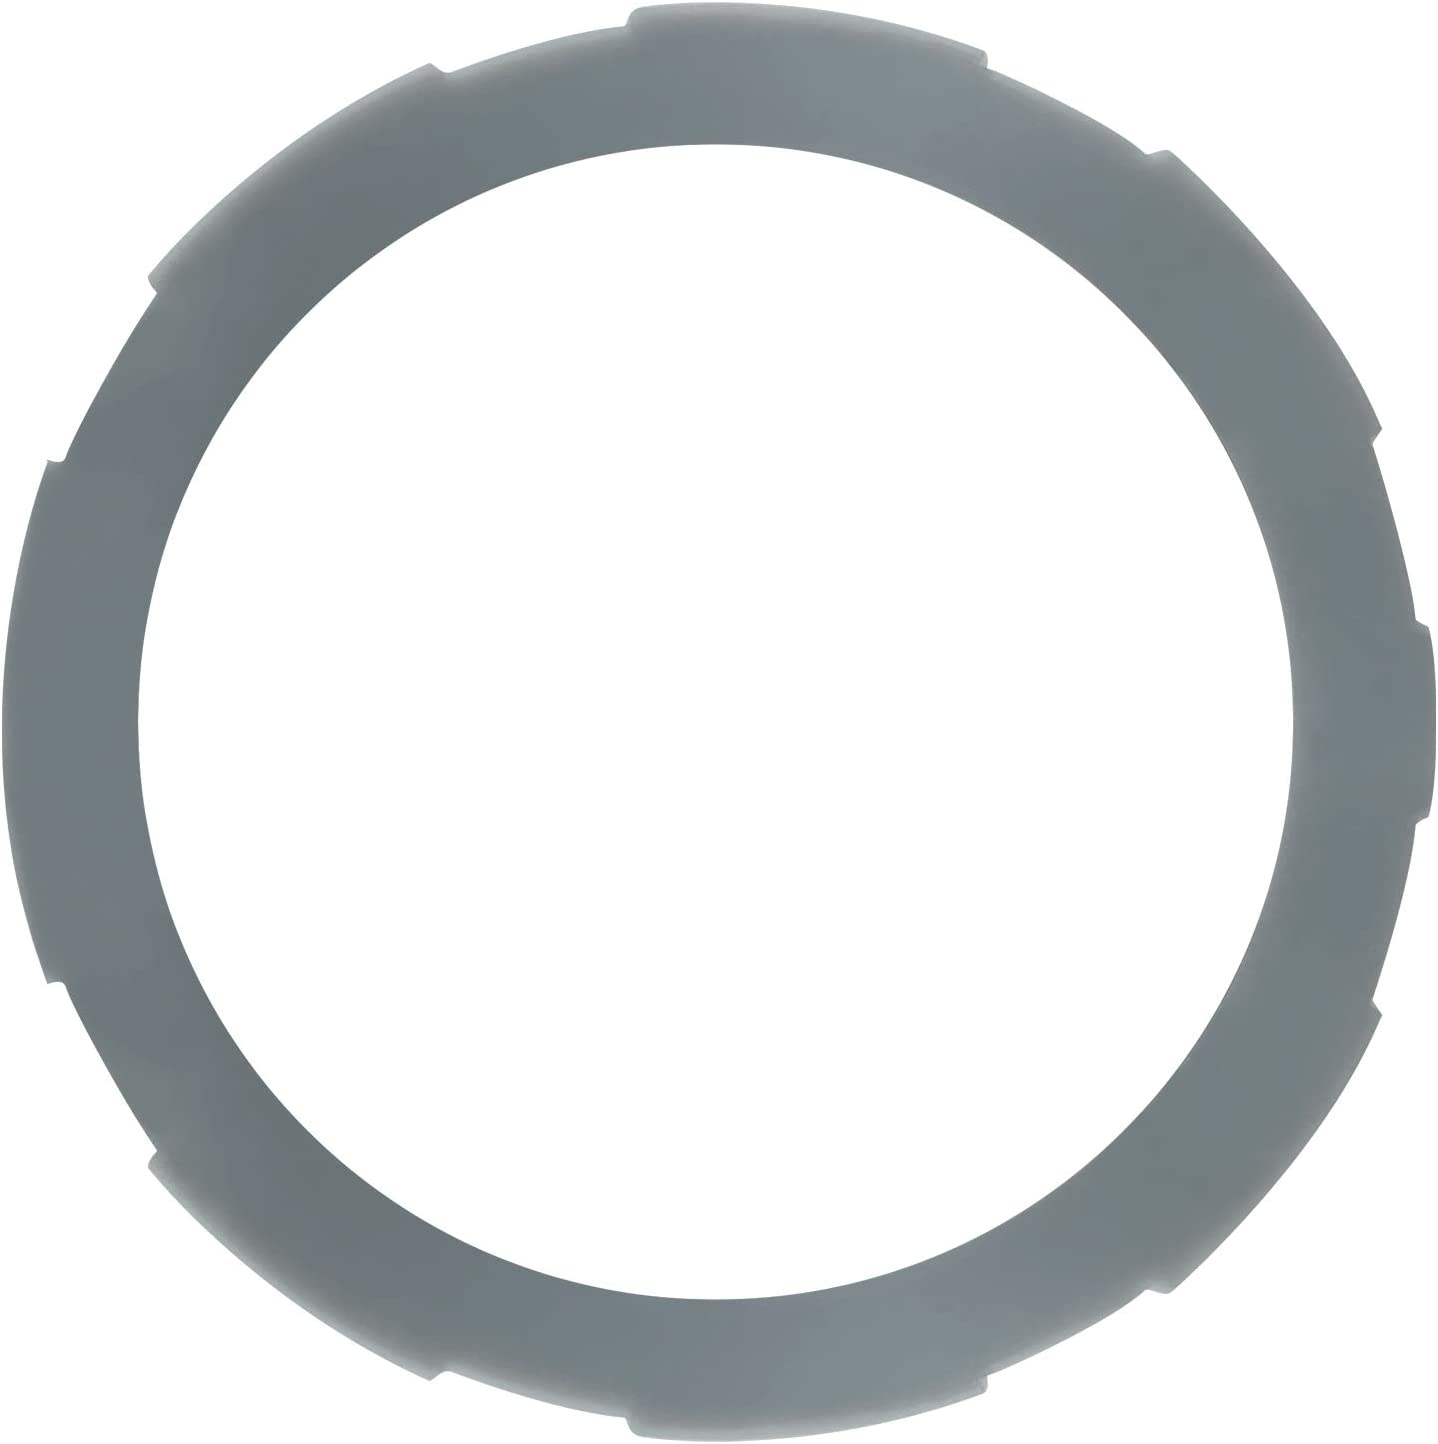 Blender Rubber Gasket Replacement Compatible with Oster Pro 1200 Blenders, Premium Blender Parts, Food Grade Silicone Gasket